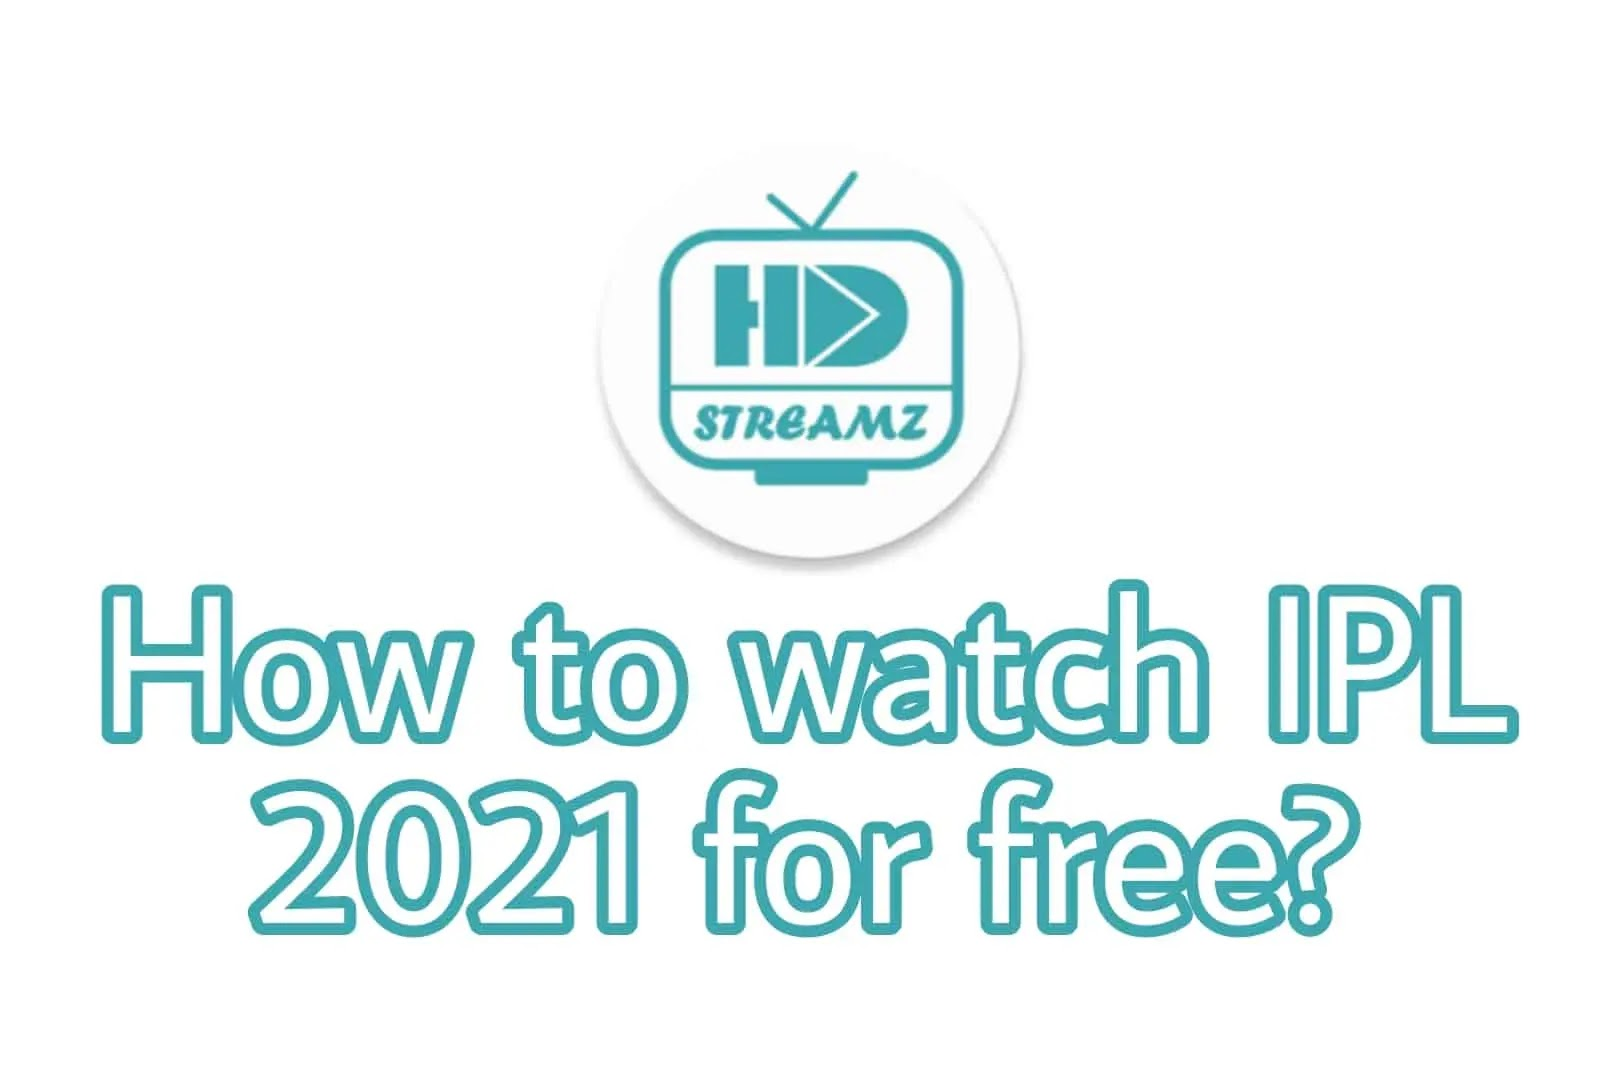 How to watch IPL 2021 free in India?